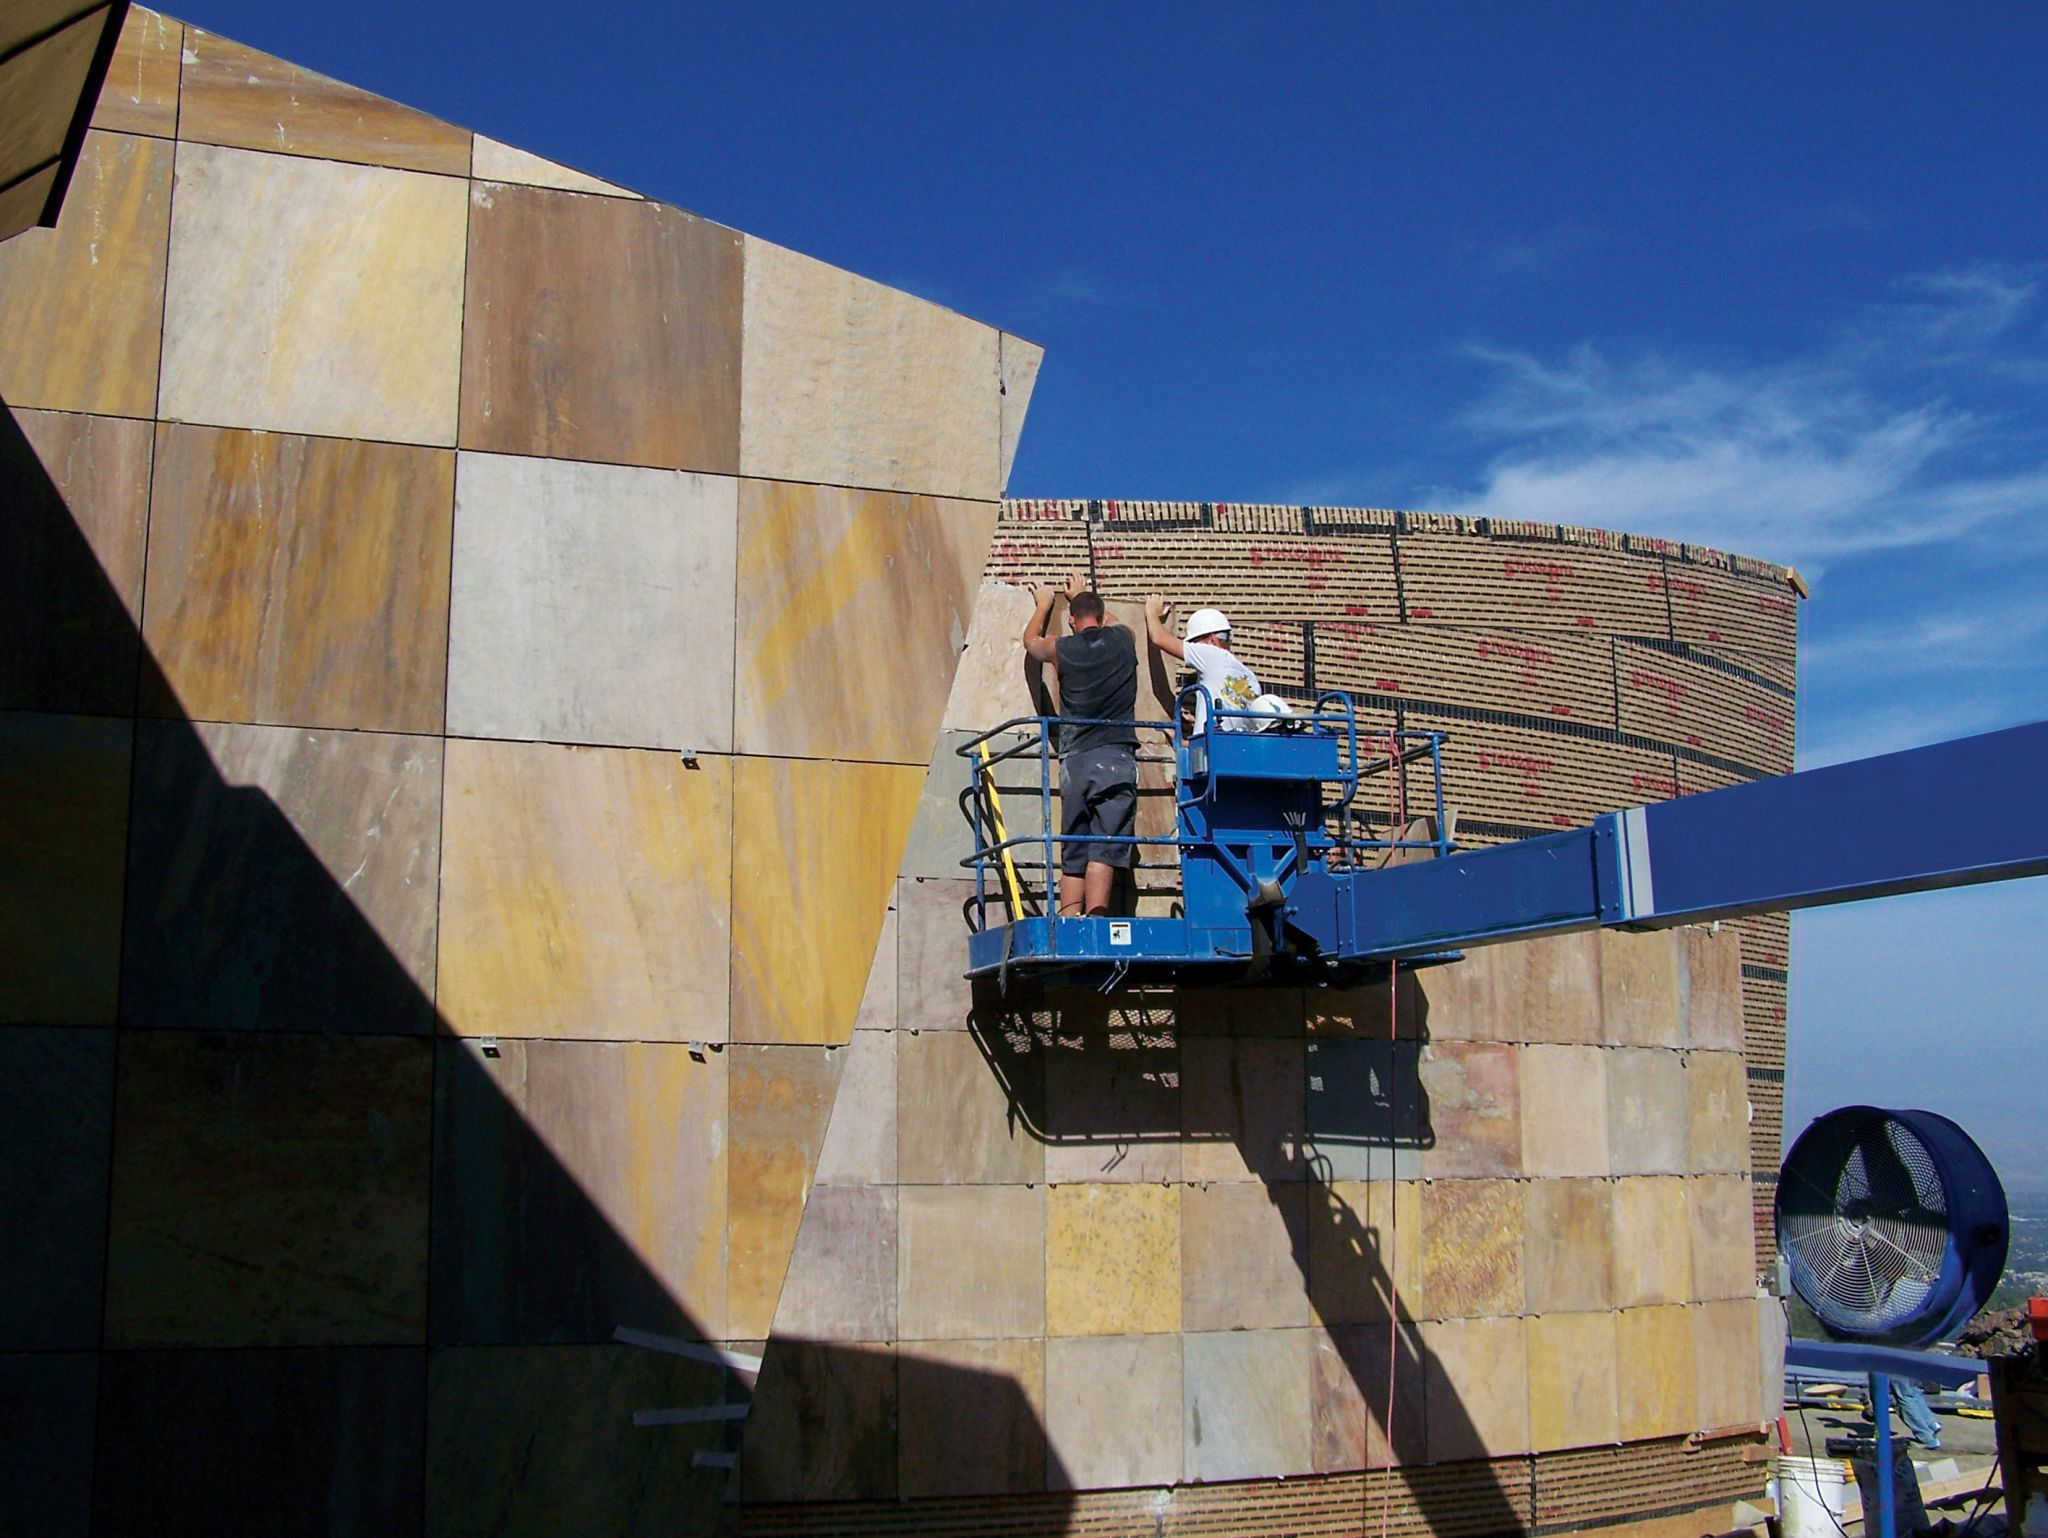 These workers are using a manlift to mechanically anchor sandstone to a building's exterior wall with metal angle clips.